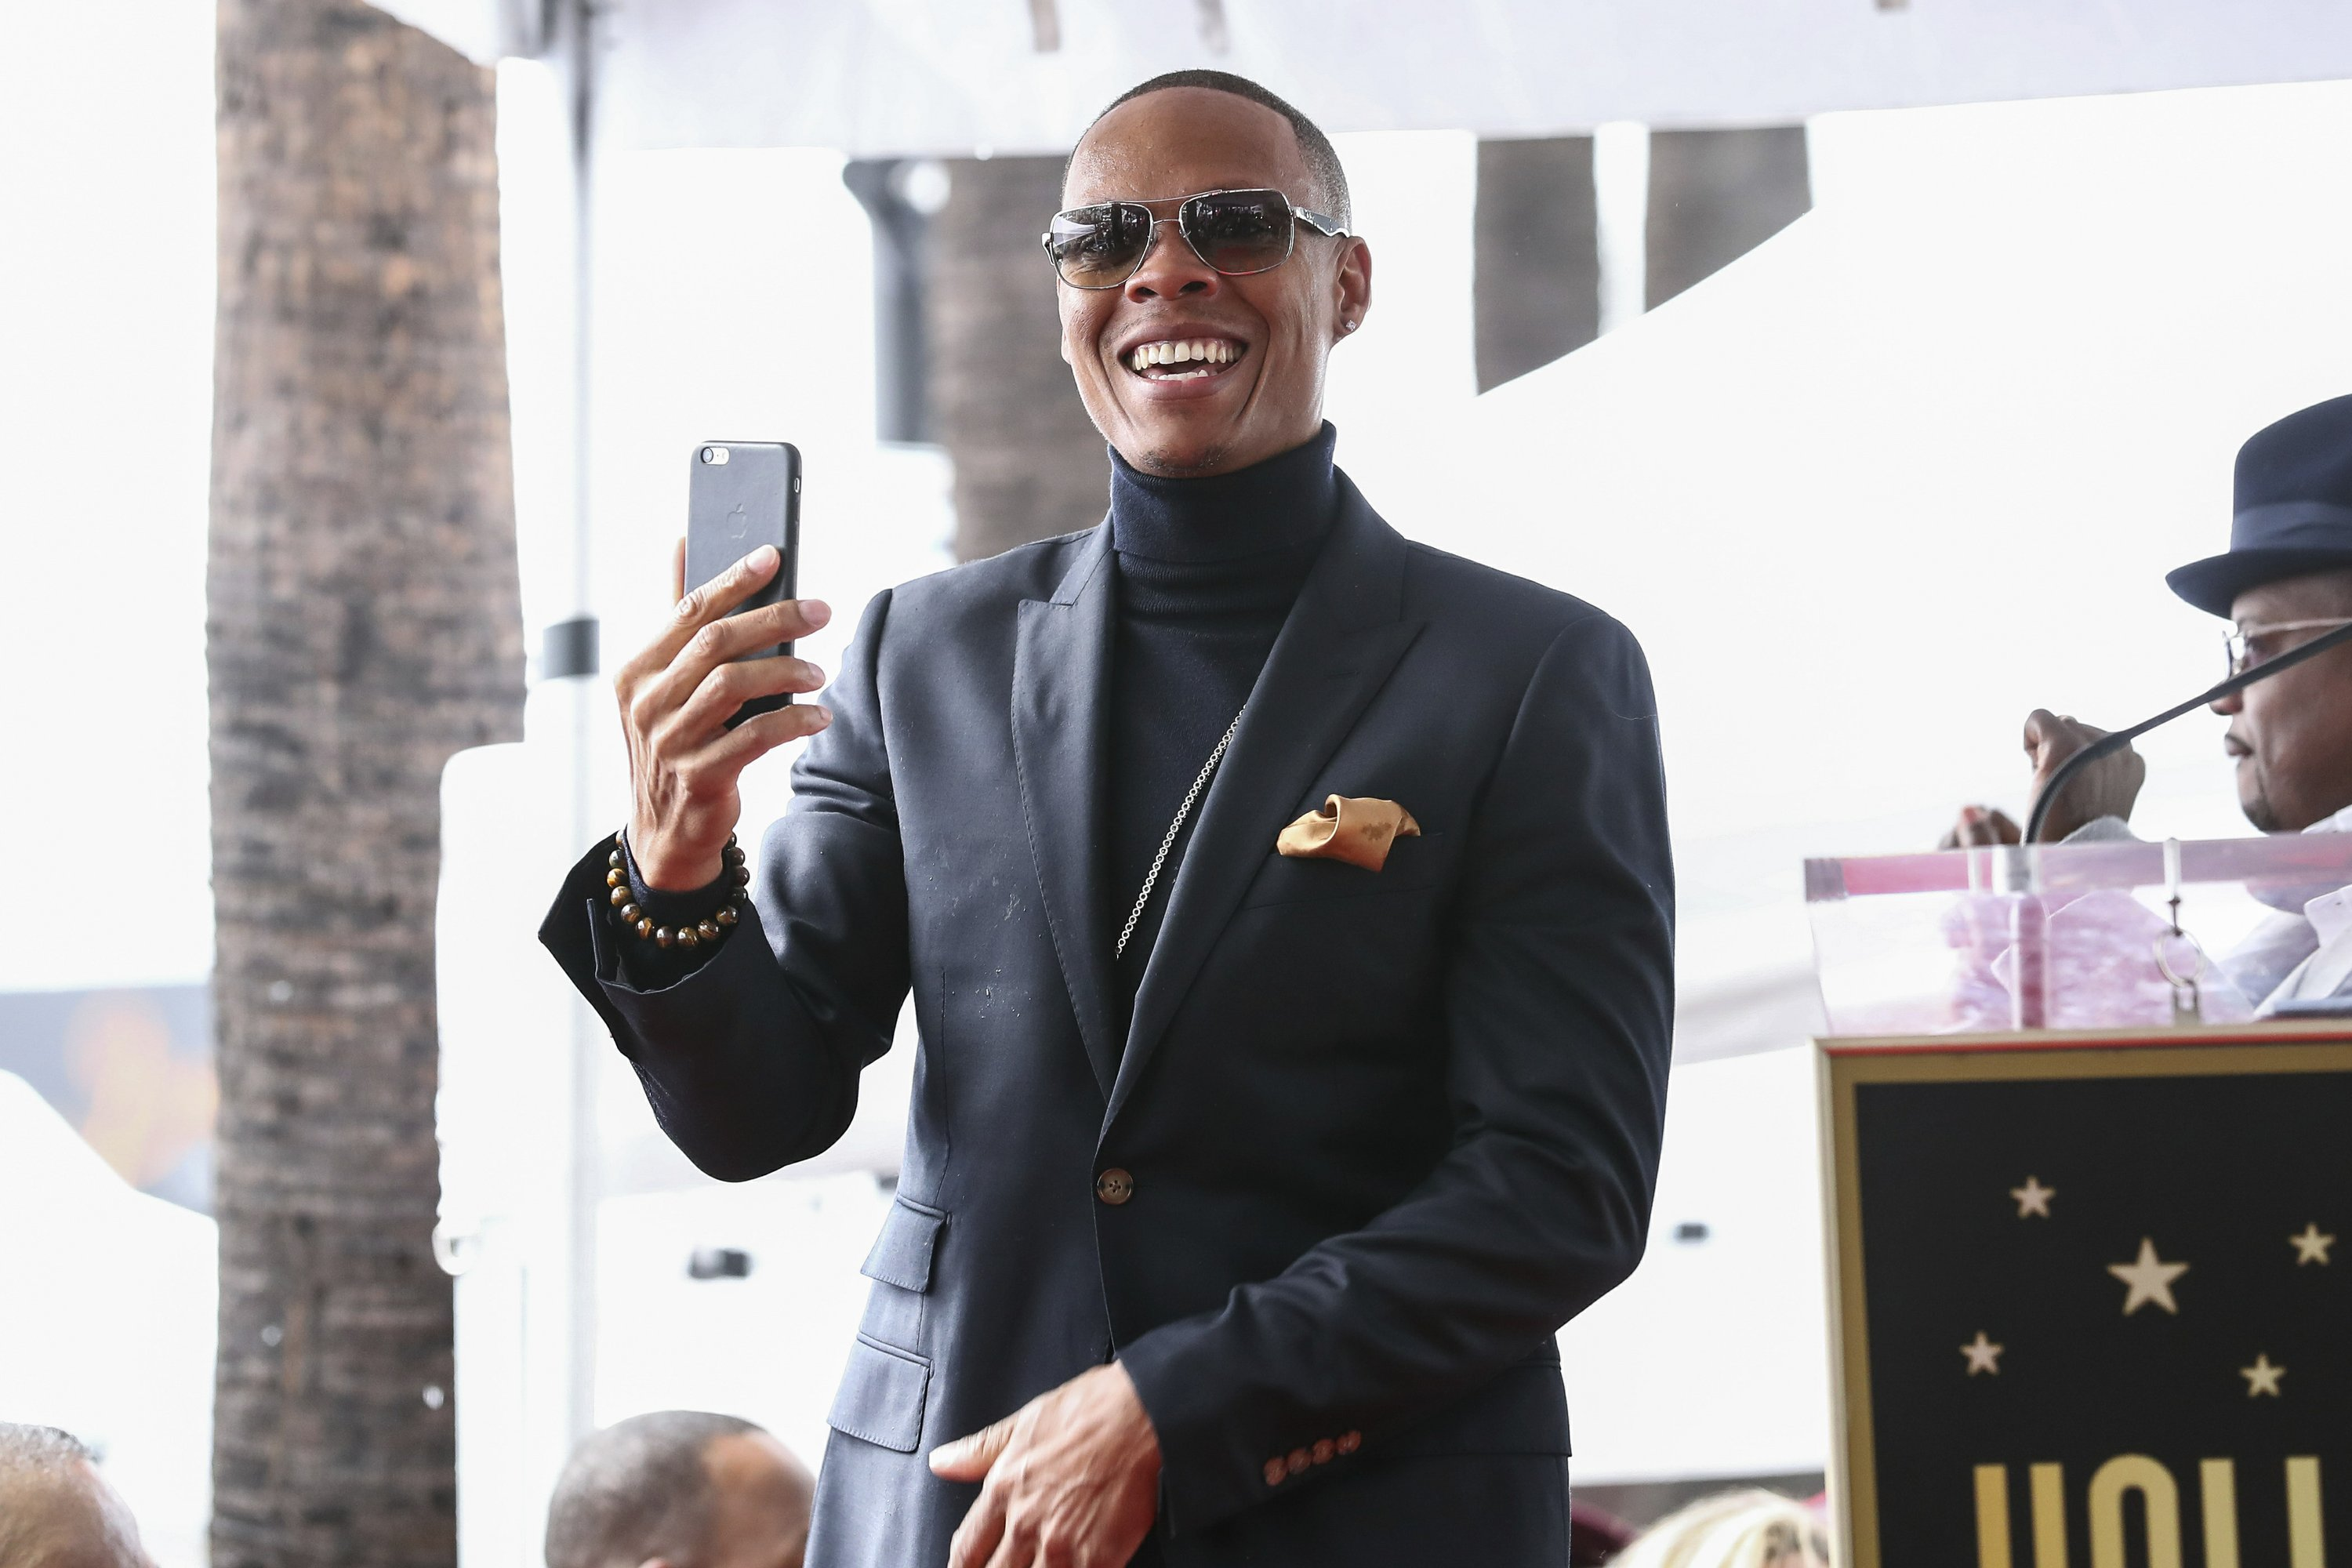 New Edition's Ronnie DeVoe announces wife expecting baby